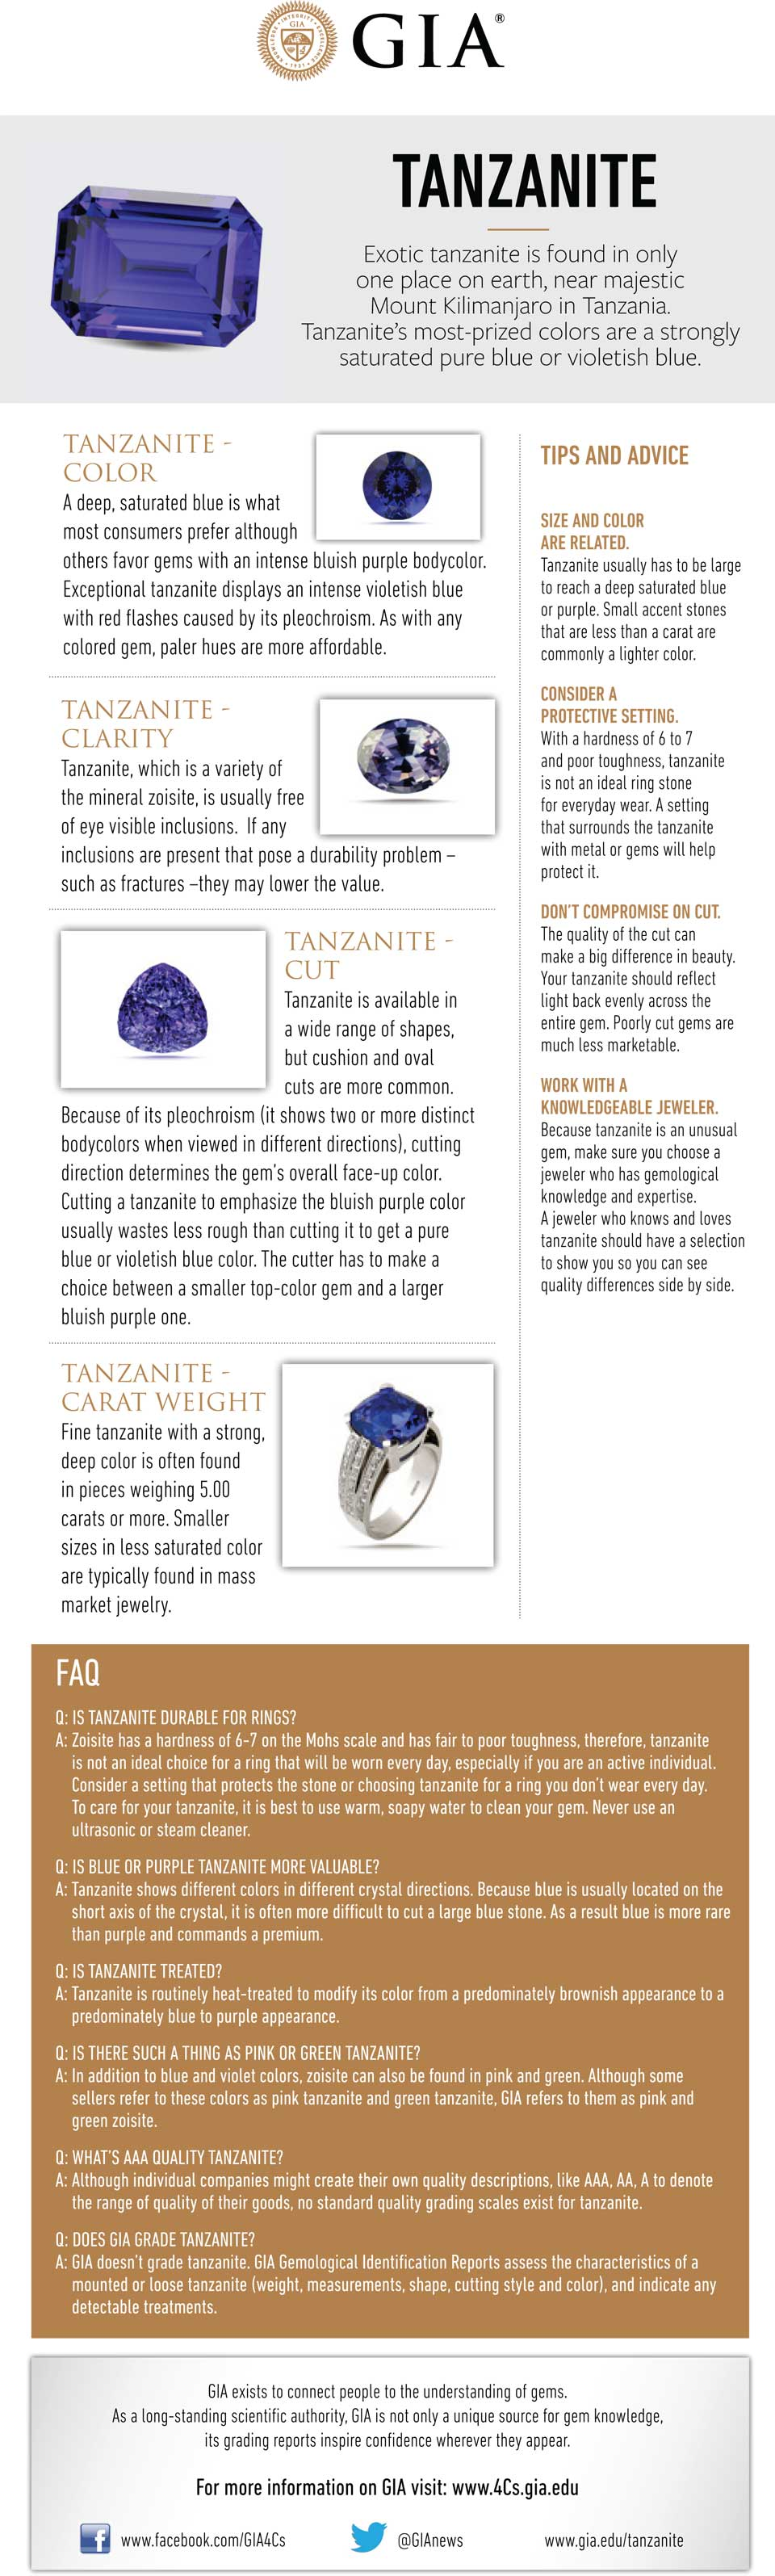 Tanzanite-Buying-Guide